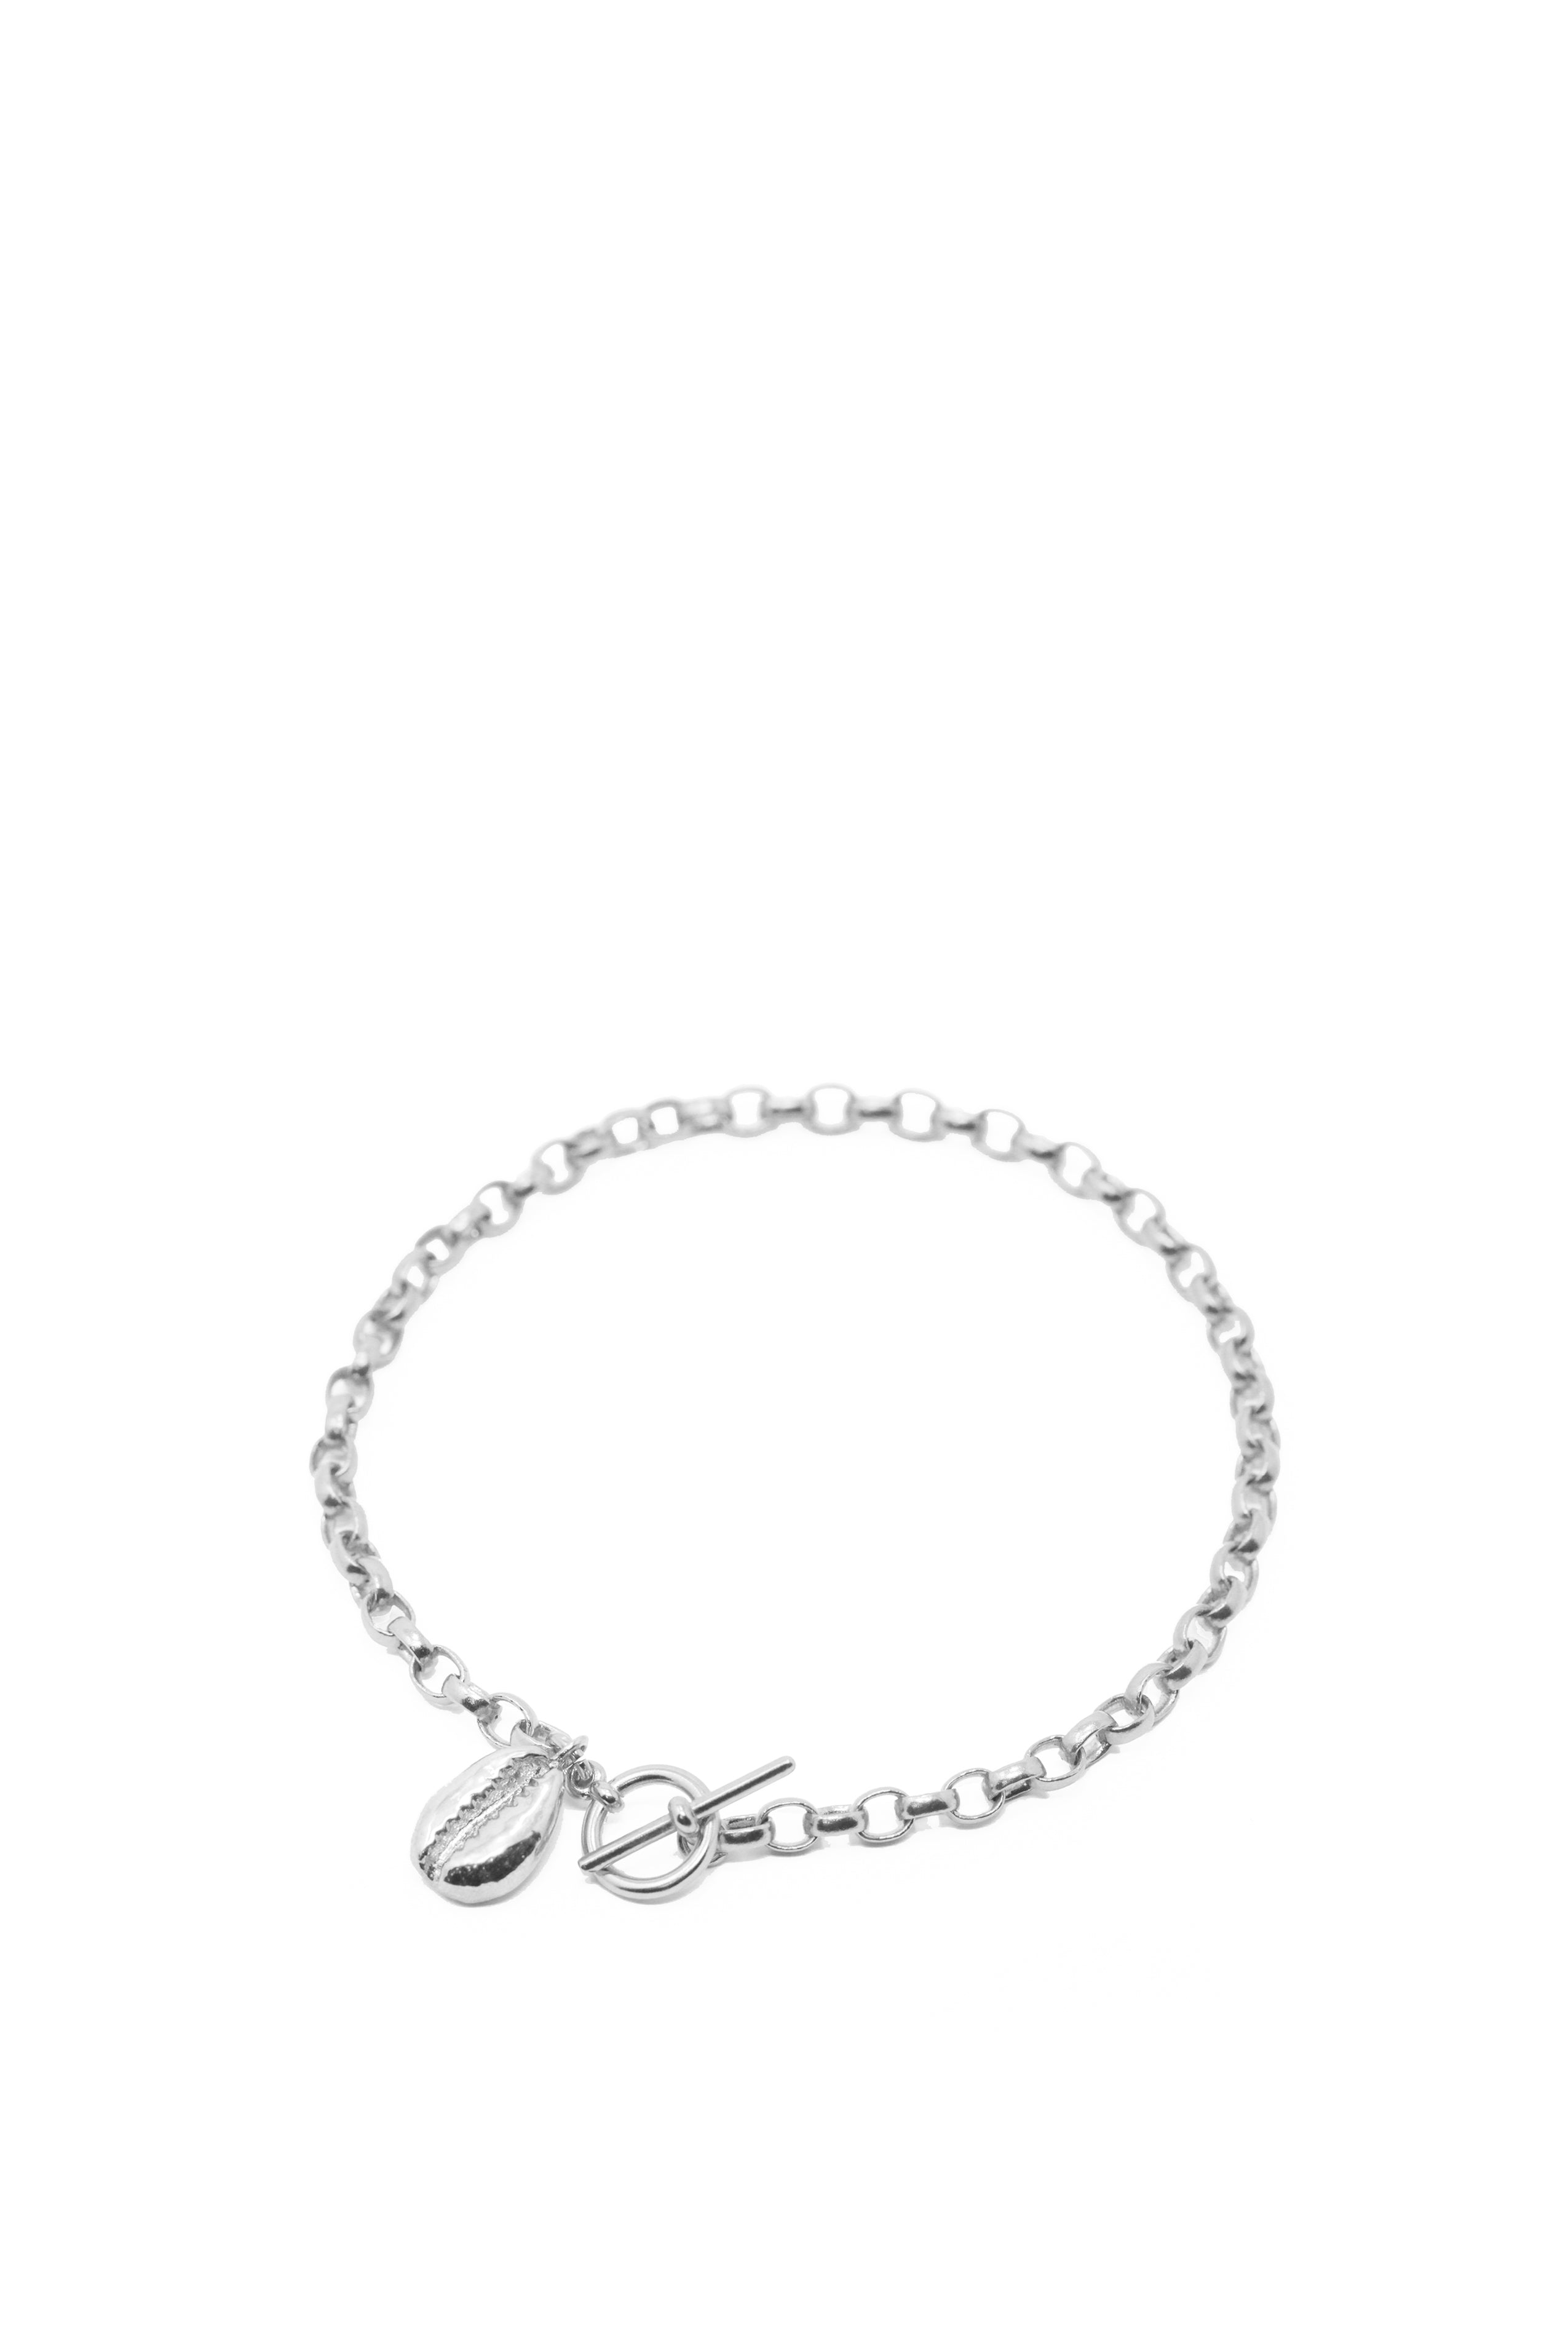 THE TOGGLE II Anklet with Cowrie Pendant